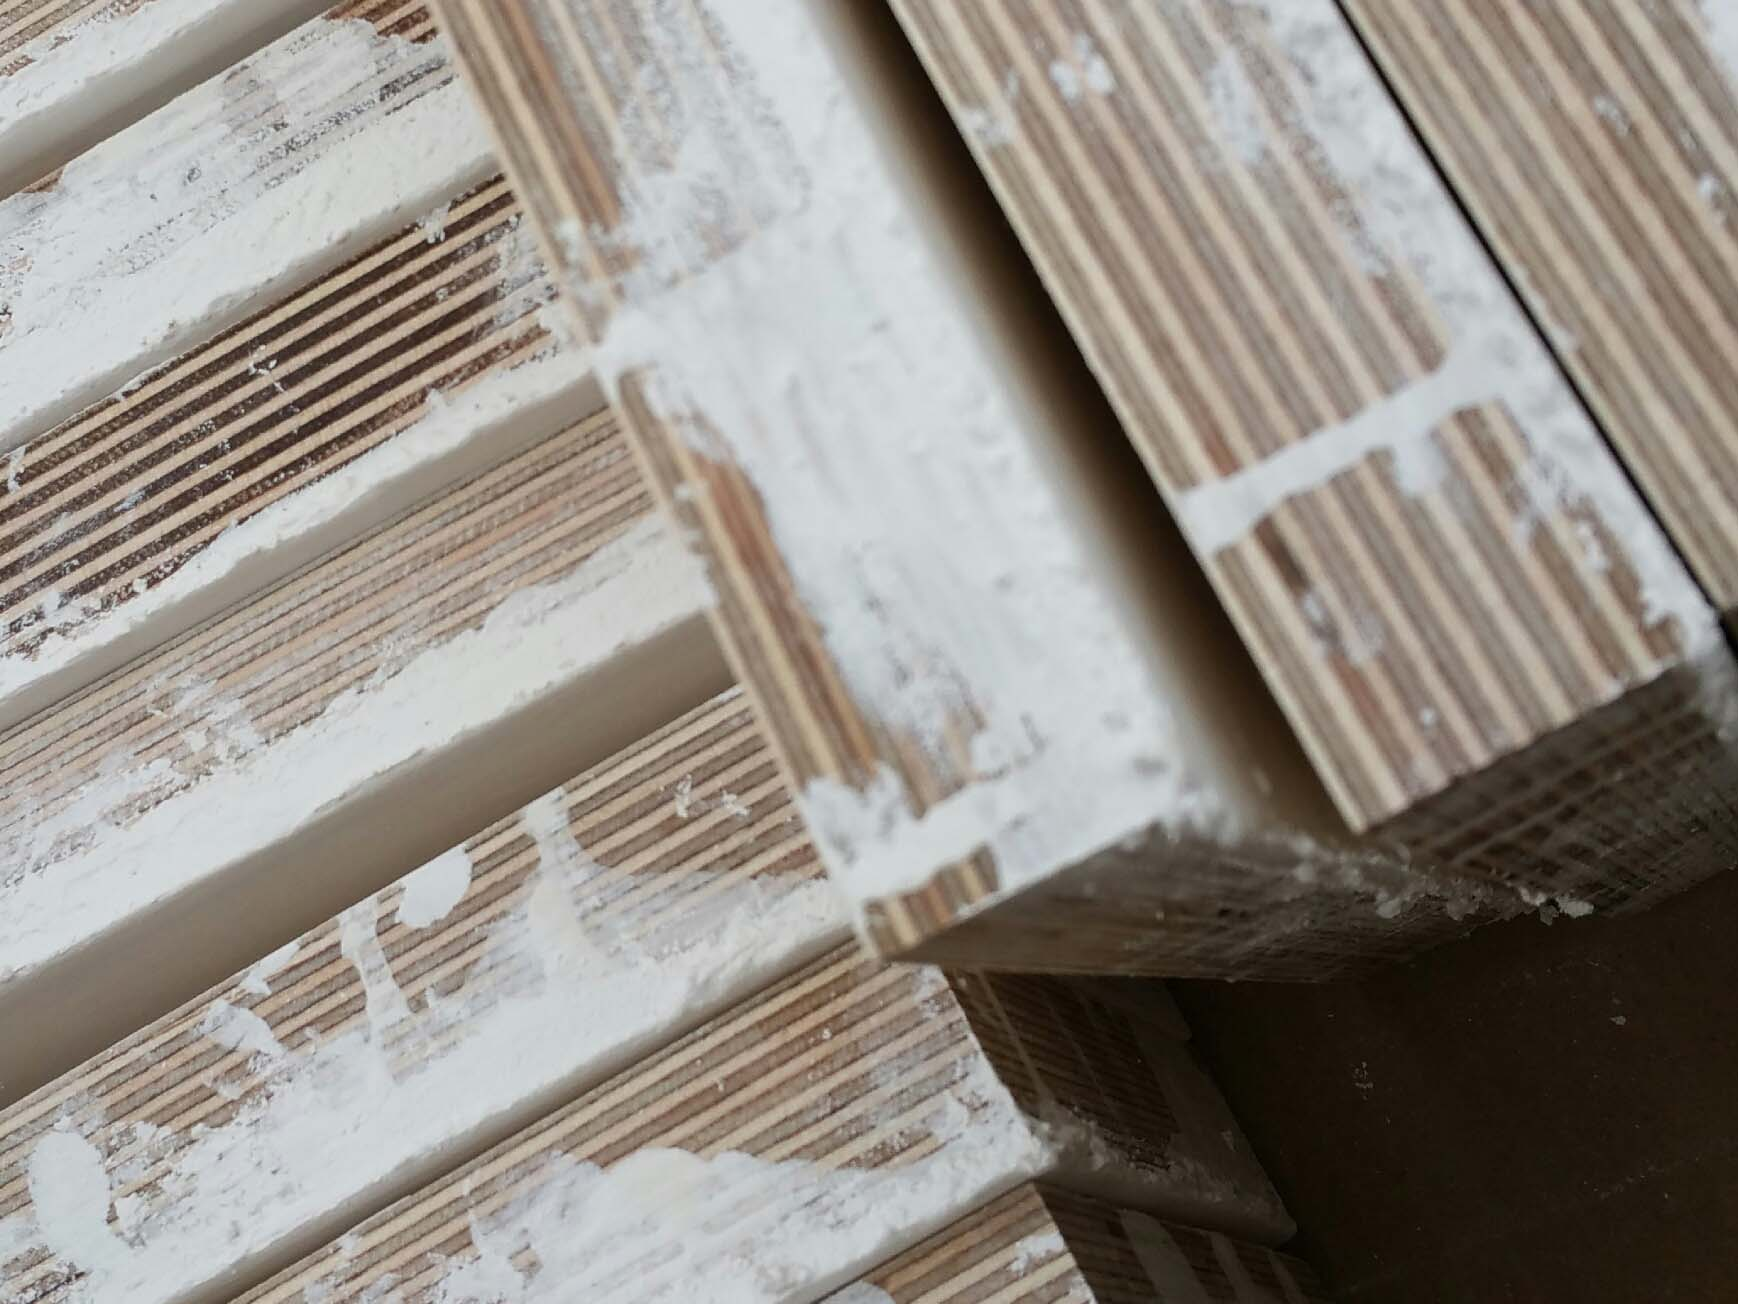 Splashes of gesso on sides of boards